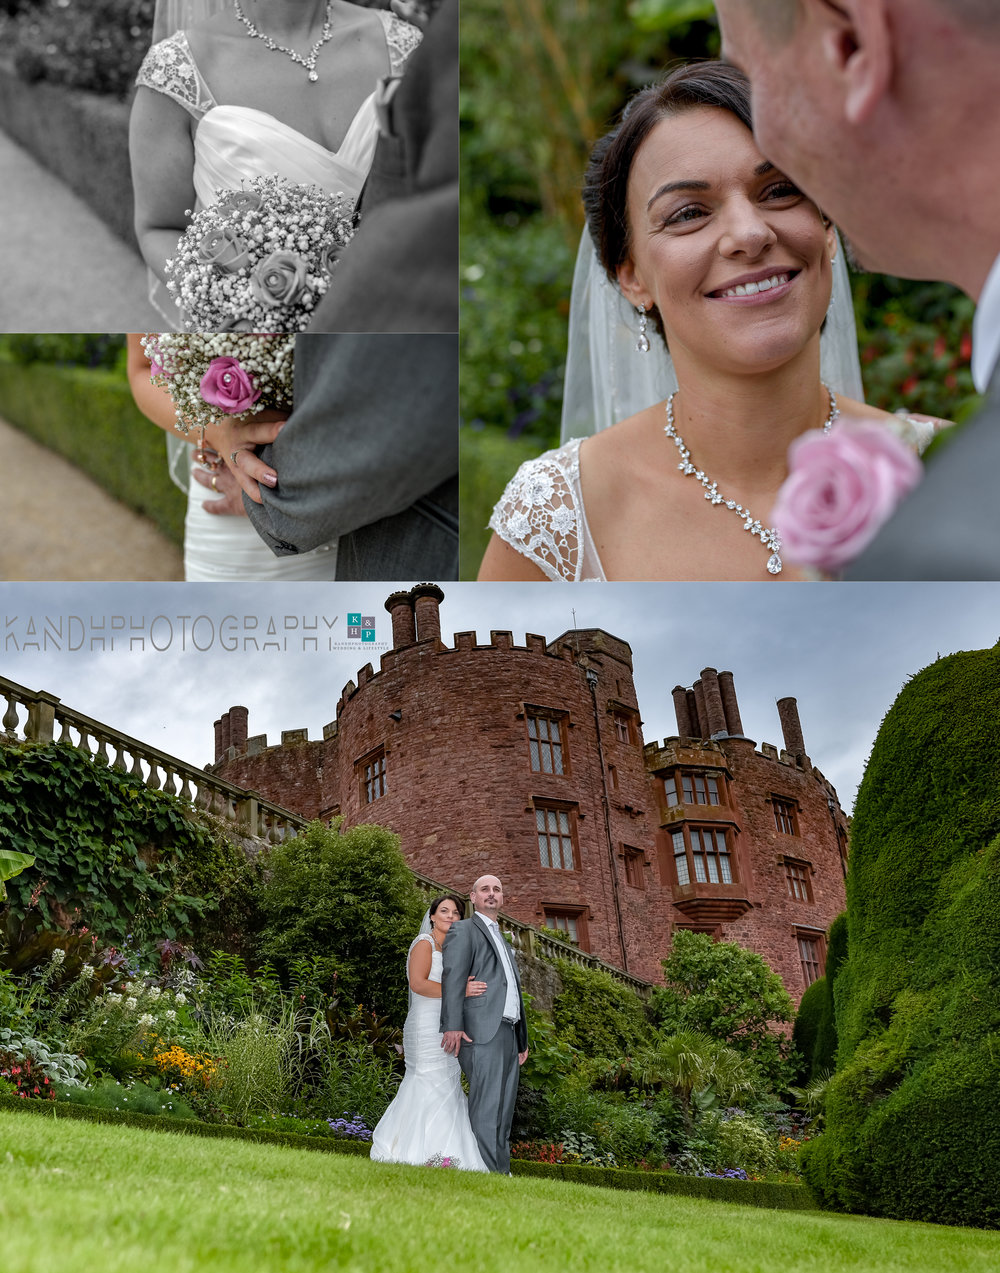 Powis Castle wedding photography.